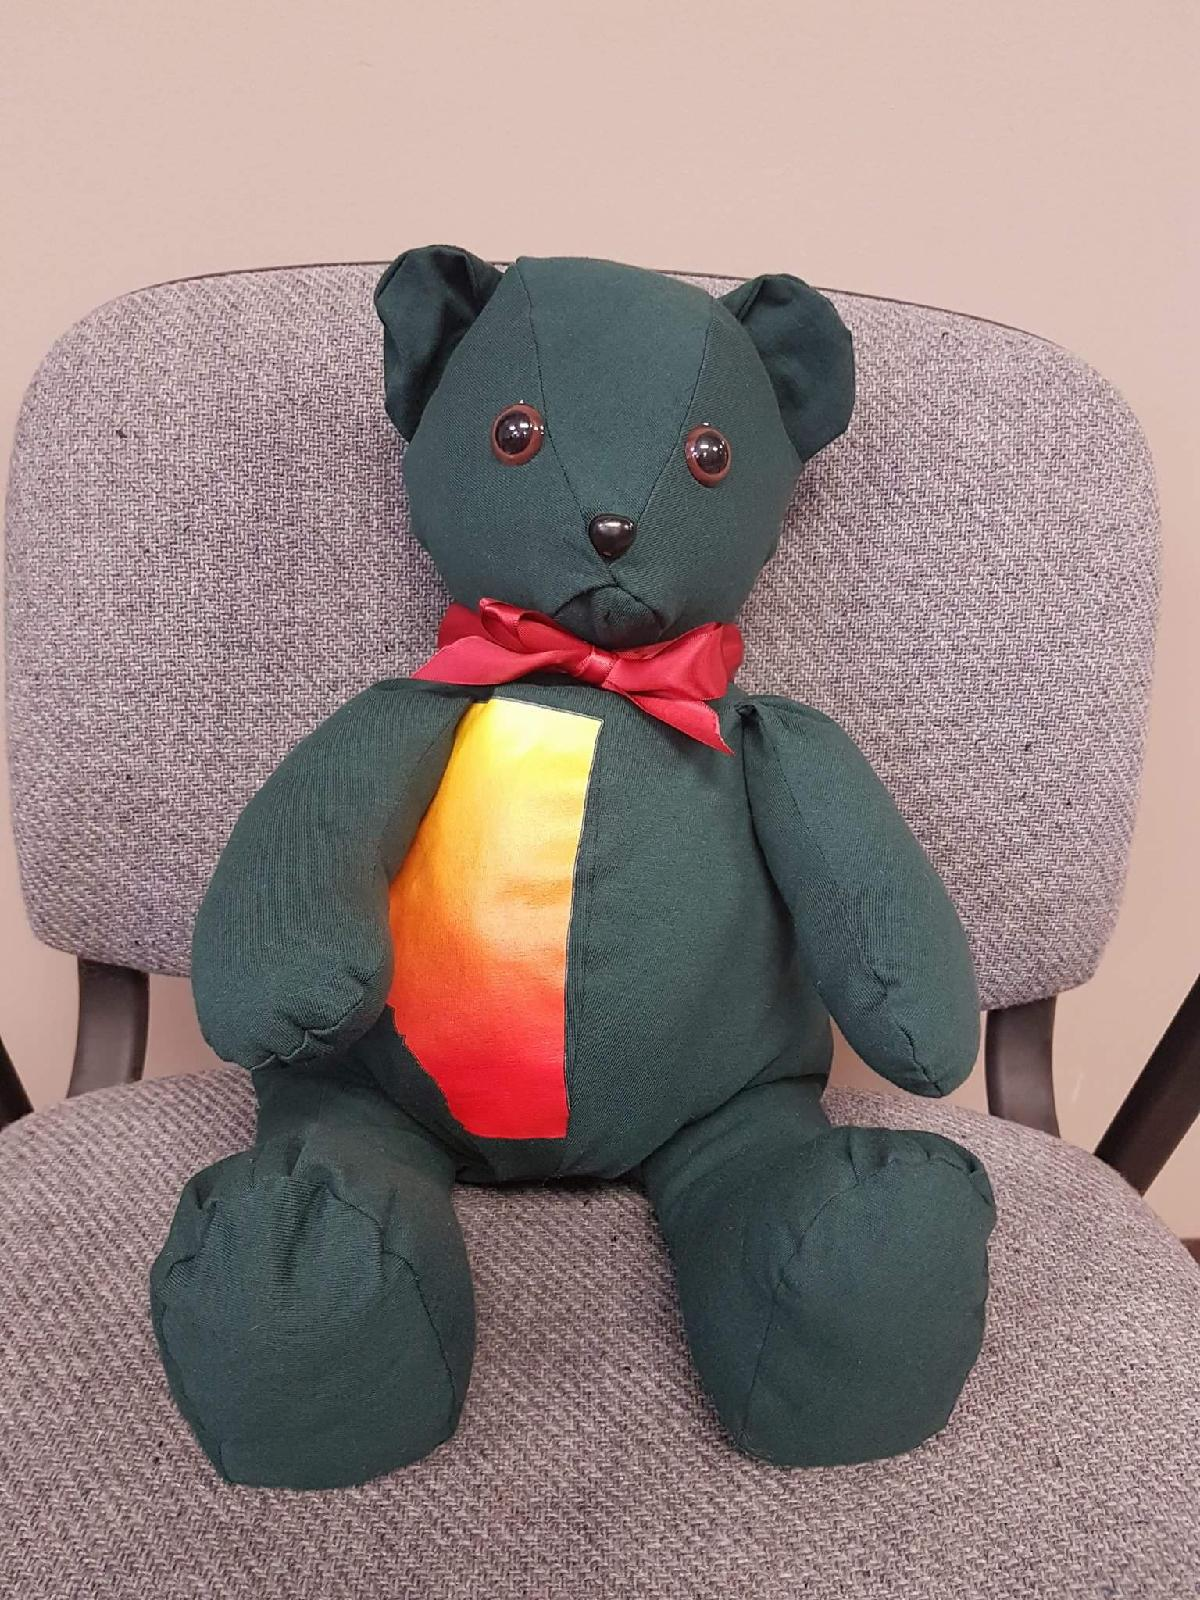 Heat Up Alberta Teddy Bear sitting in a chair